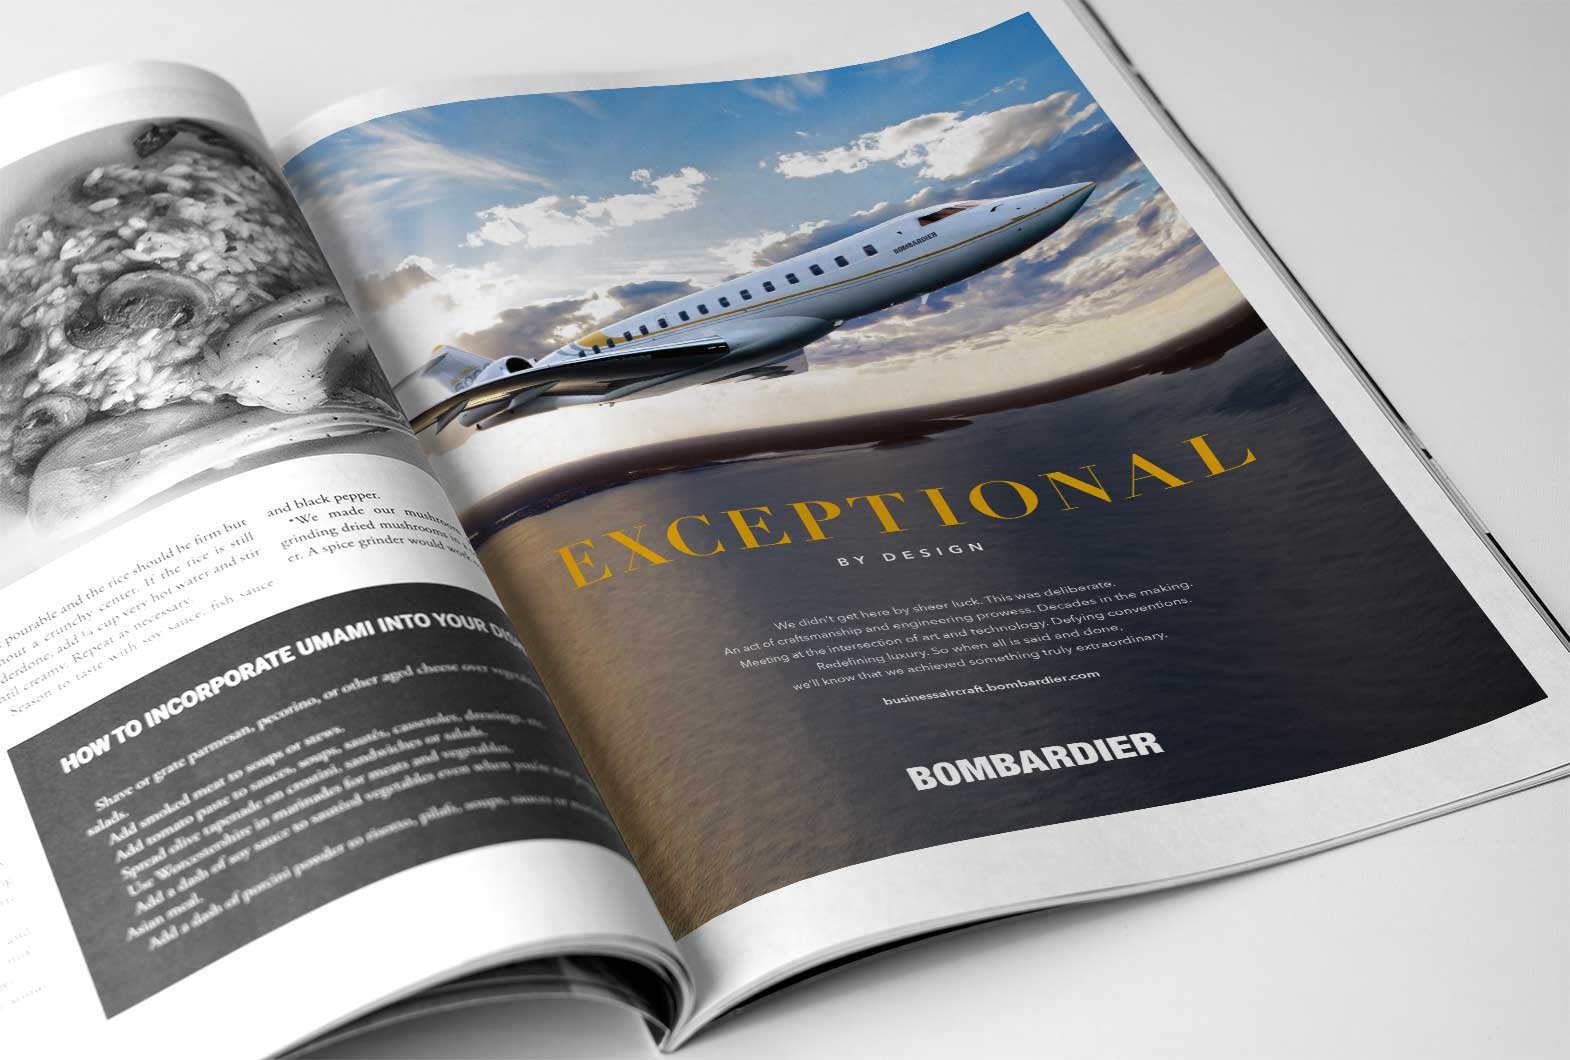 Bombardier Business Aircraft brochure